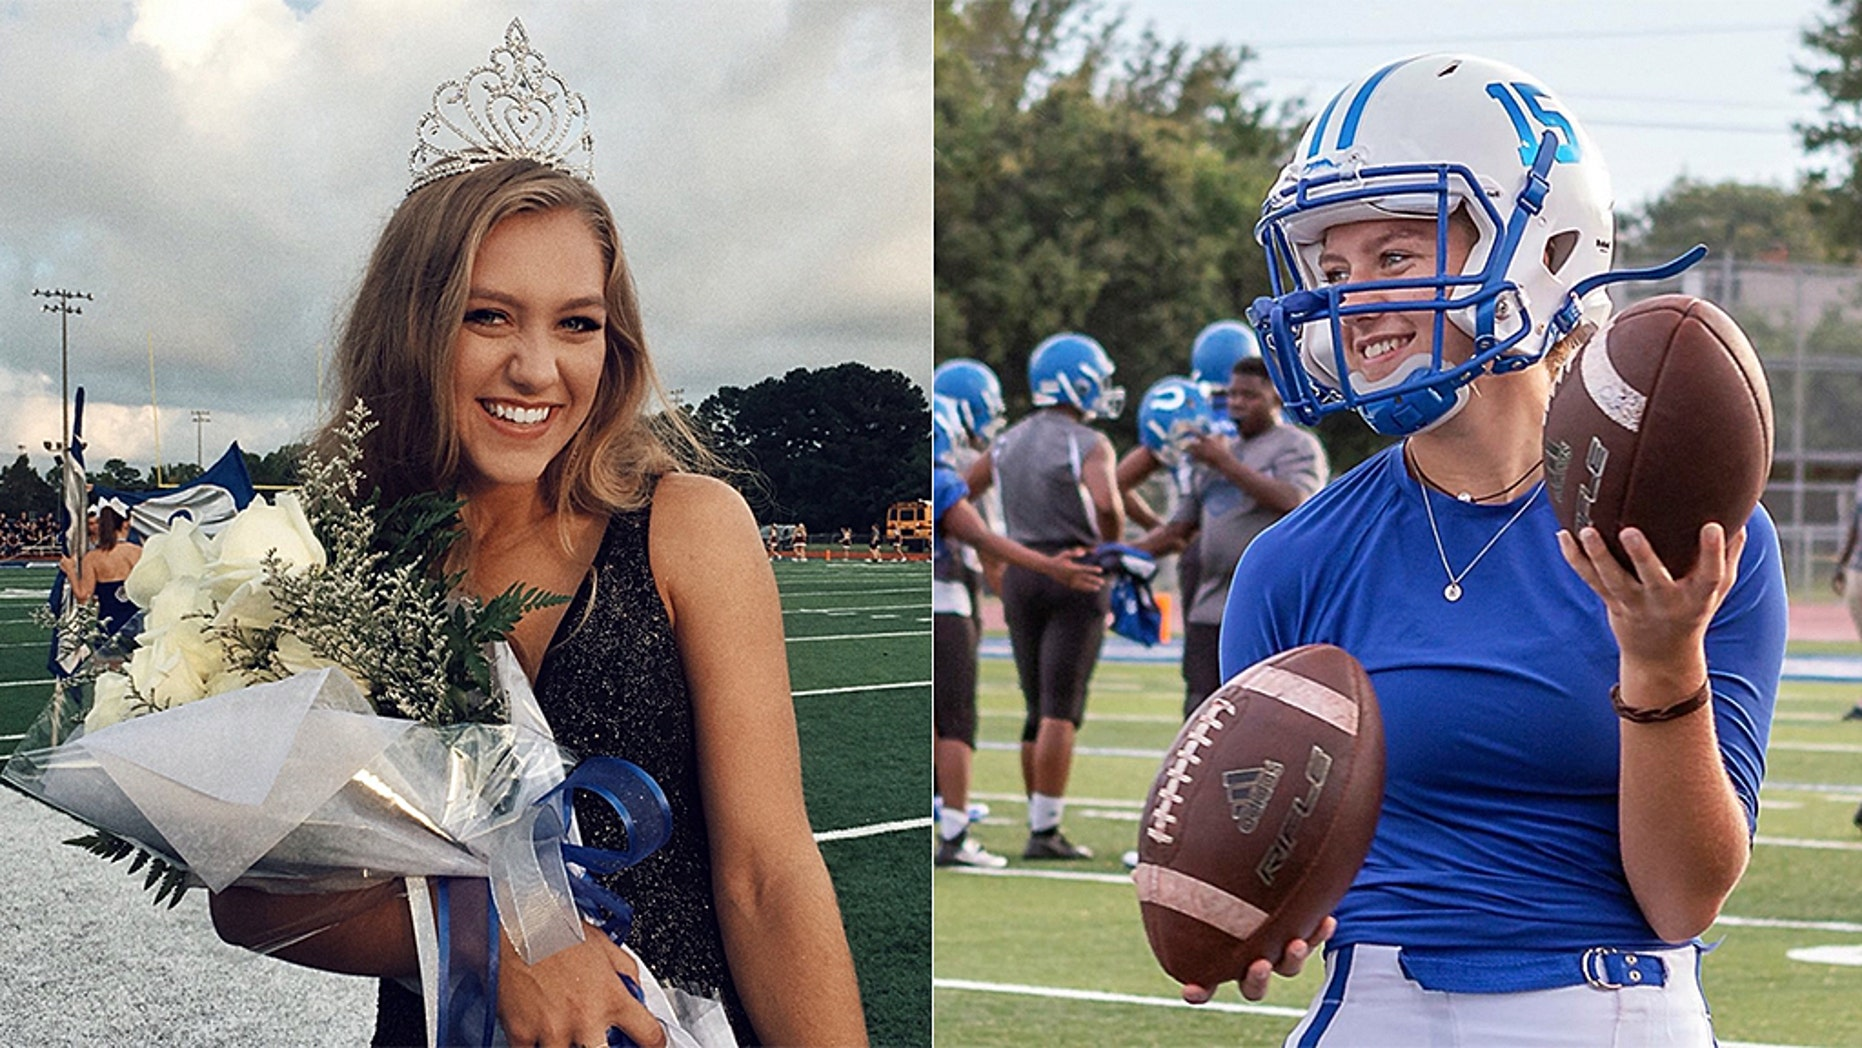 Homecoming Queen Kaylee Foster holds her football helmet while wearing a tiara on the field in Ocean Springs, Miss., Sept. 7, 2018.